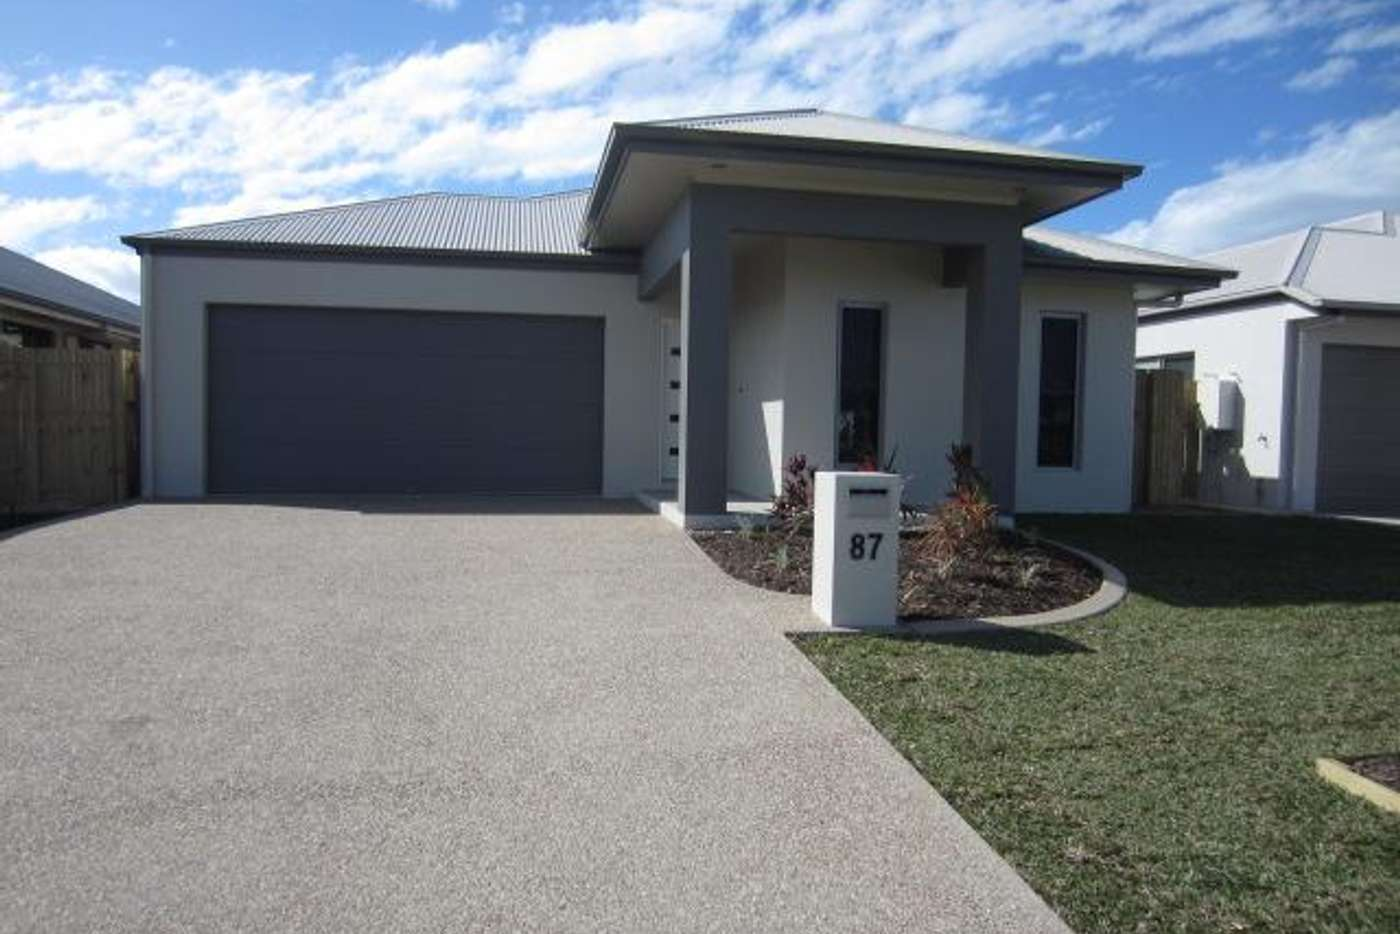 Main view of Homely house listing, 87 Sunhaven Boulevard, Burdell QLD 4818